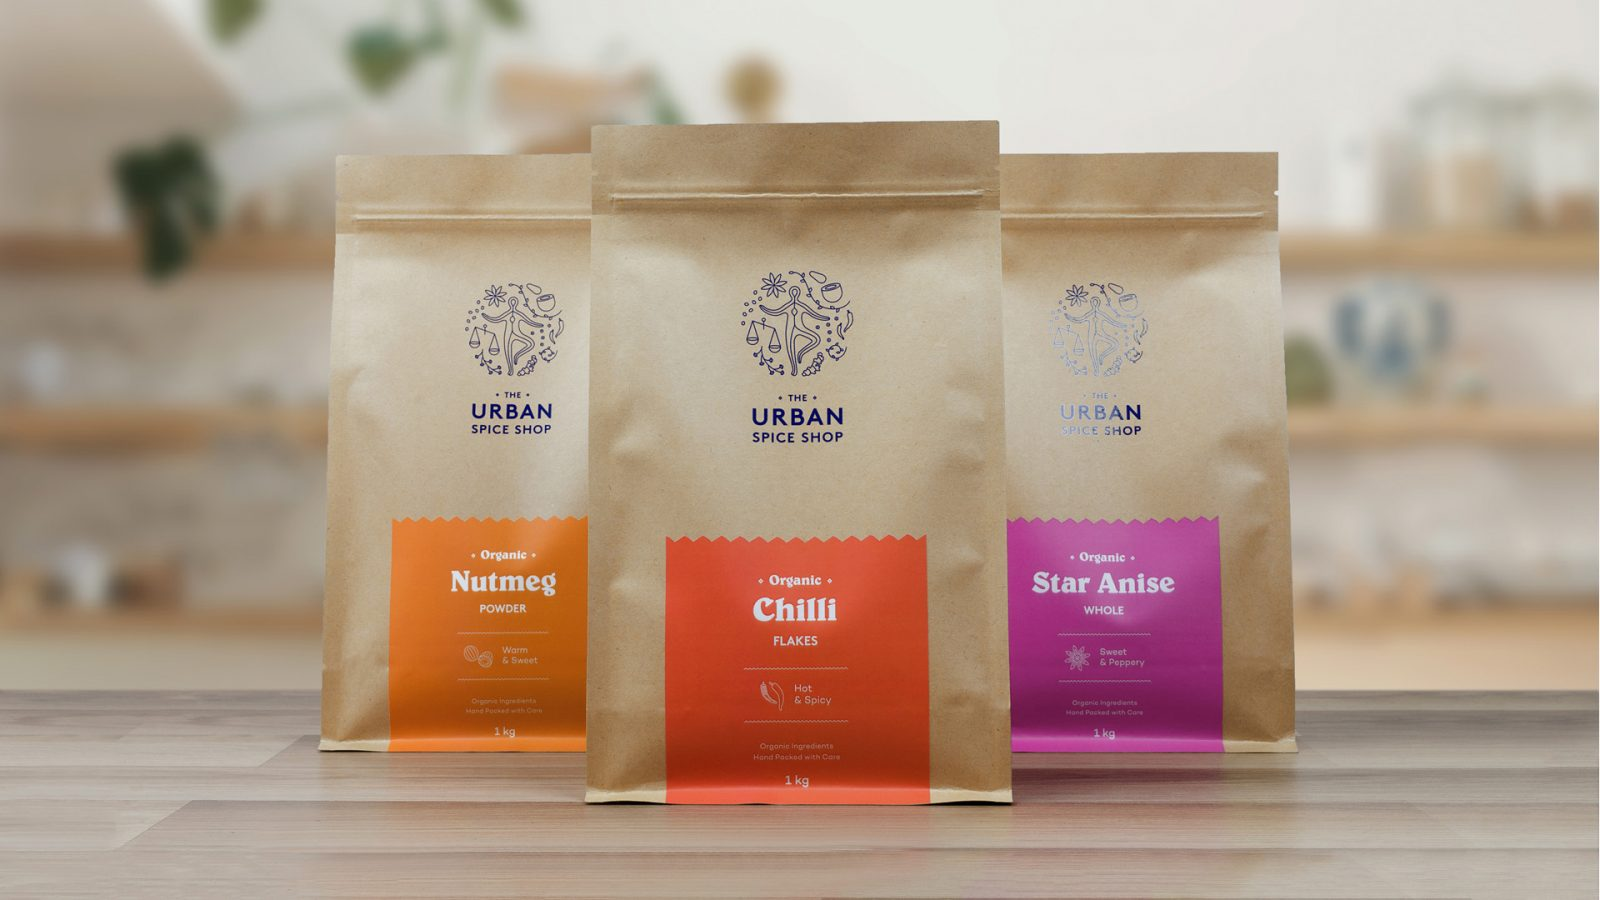 Brand Identity and Packaging Design for The Urban Spice Shop